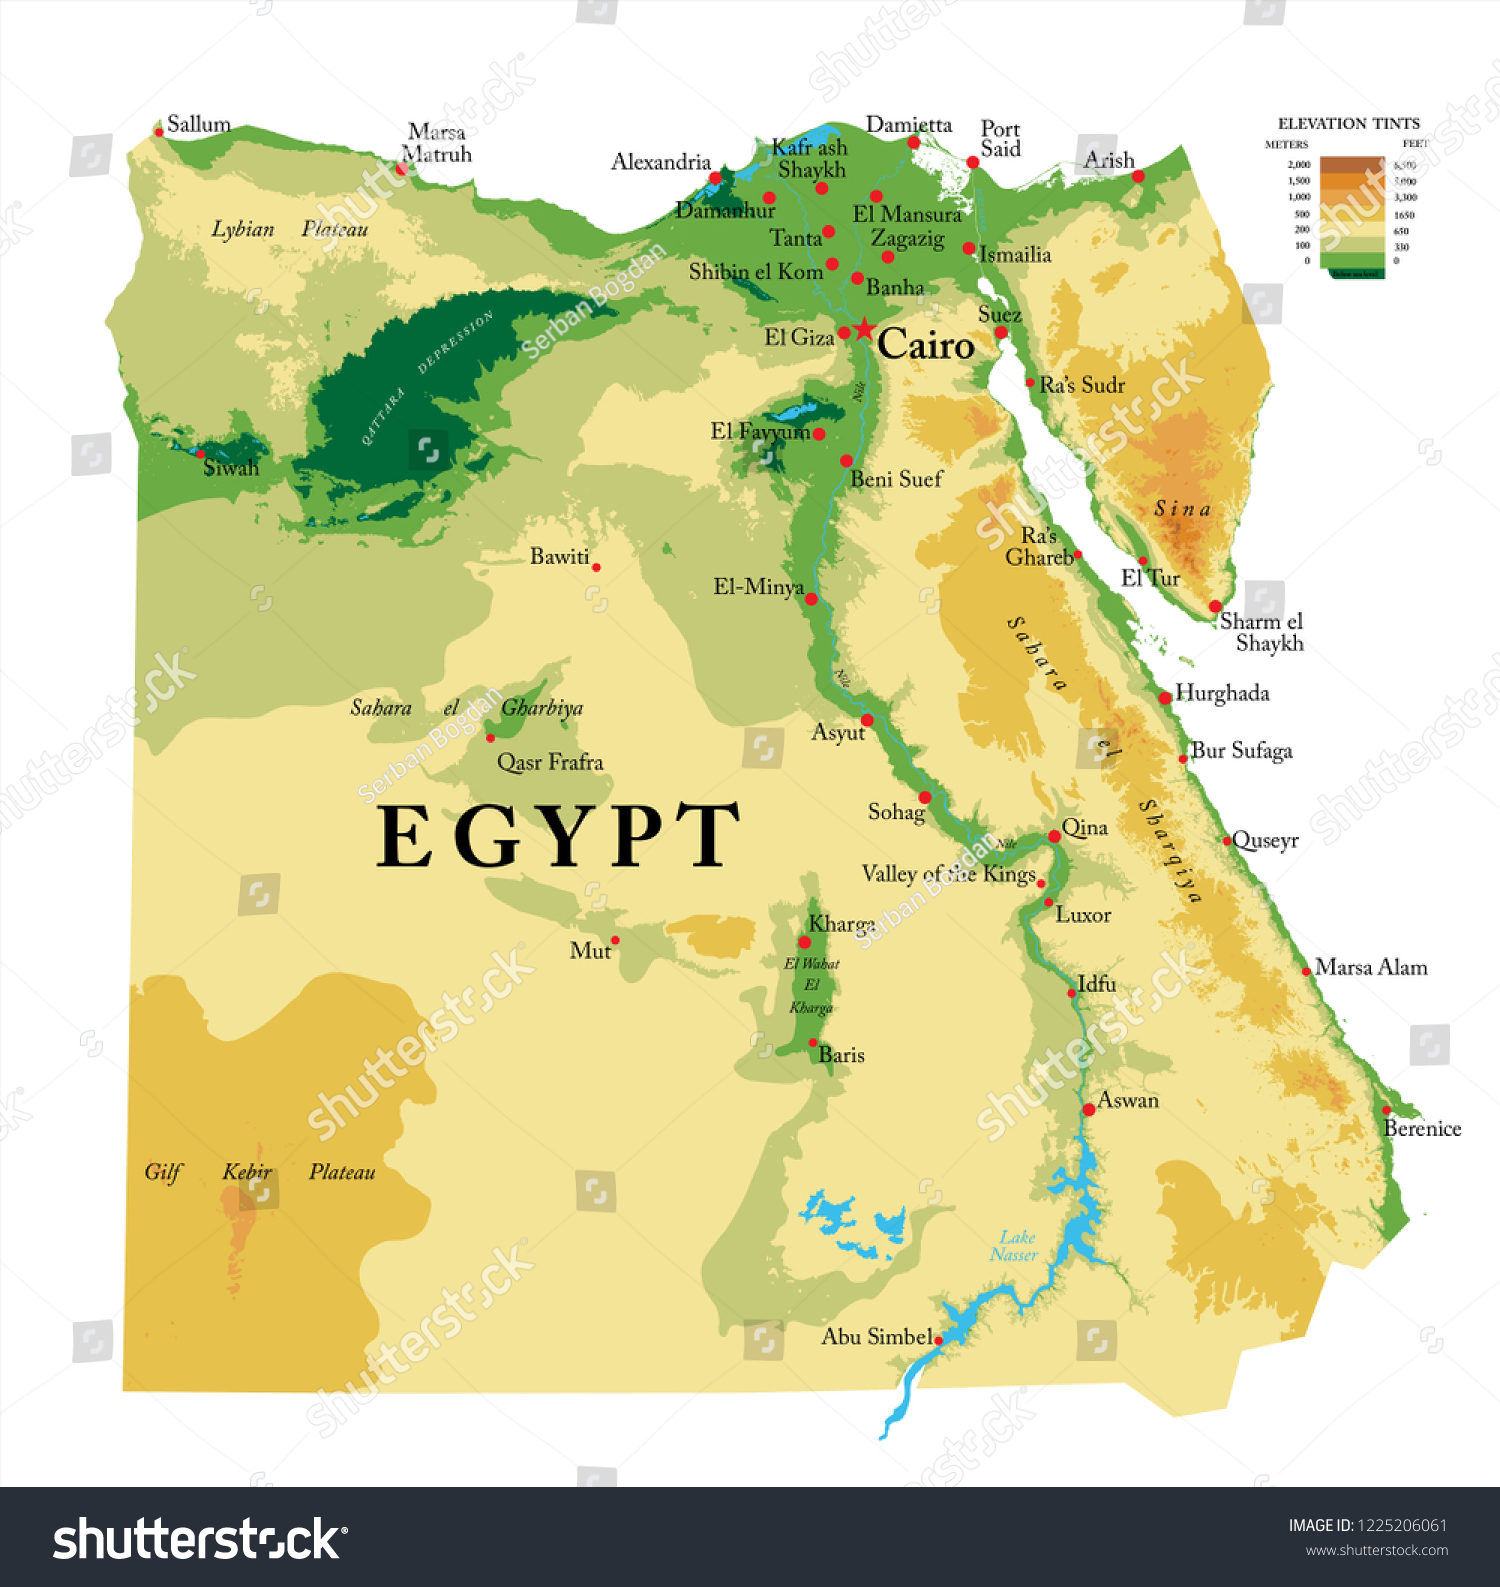 Physical Map Of Egypt From Shutterstock 3